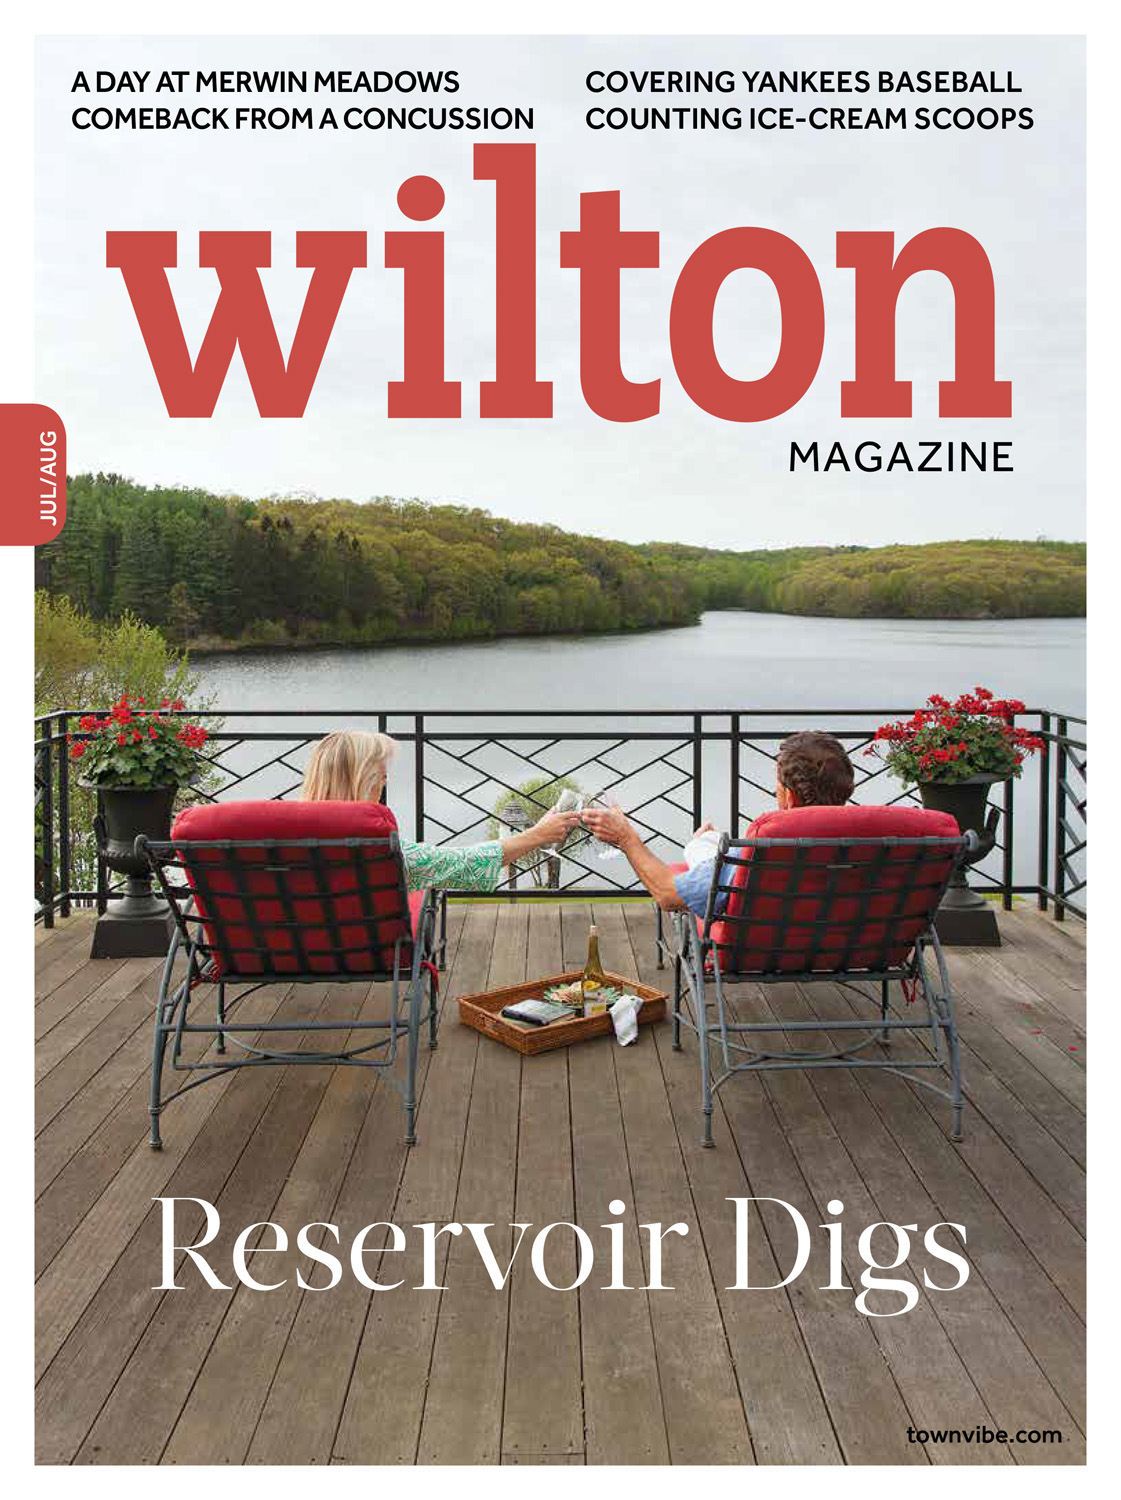 Wilton Magazine July/August 2014